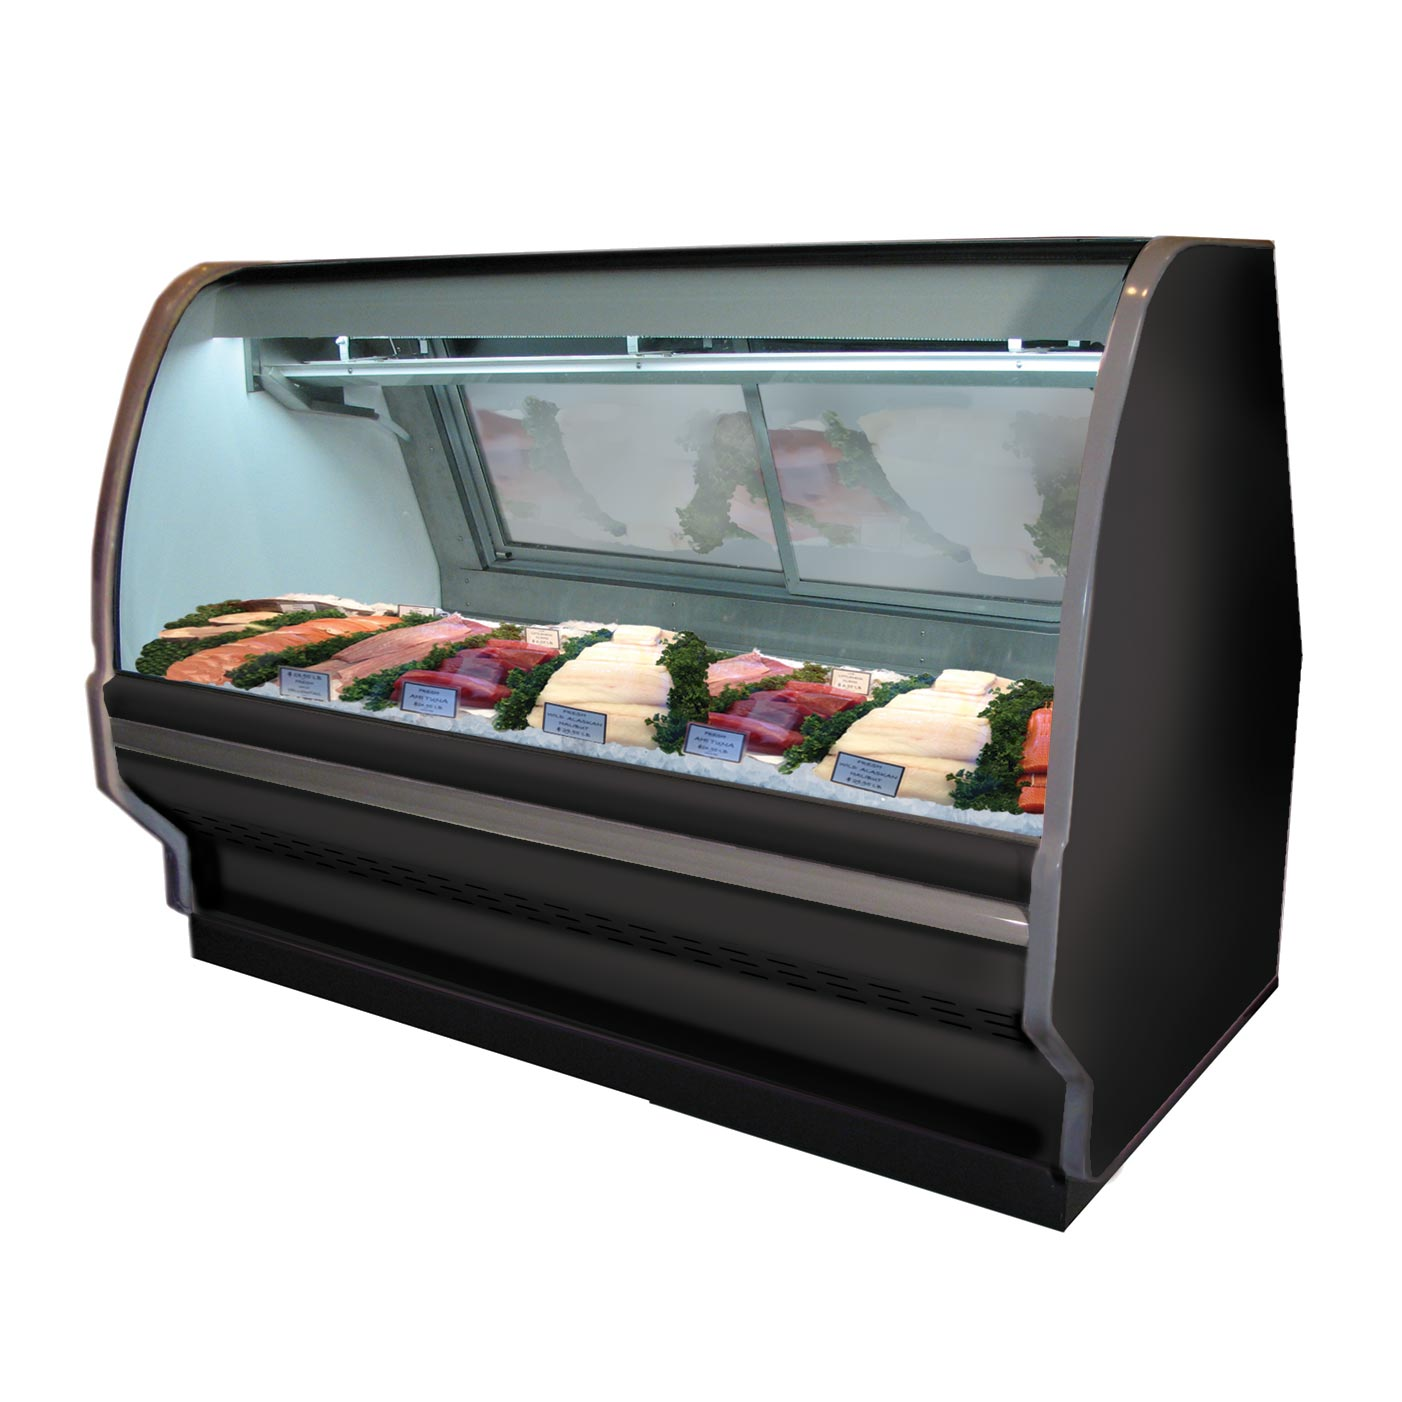 Howard-McCray R-CFS40E-8C-BE-LED display case, deli seafood / poultry